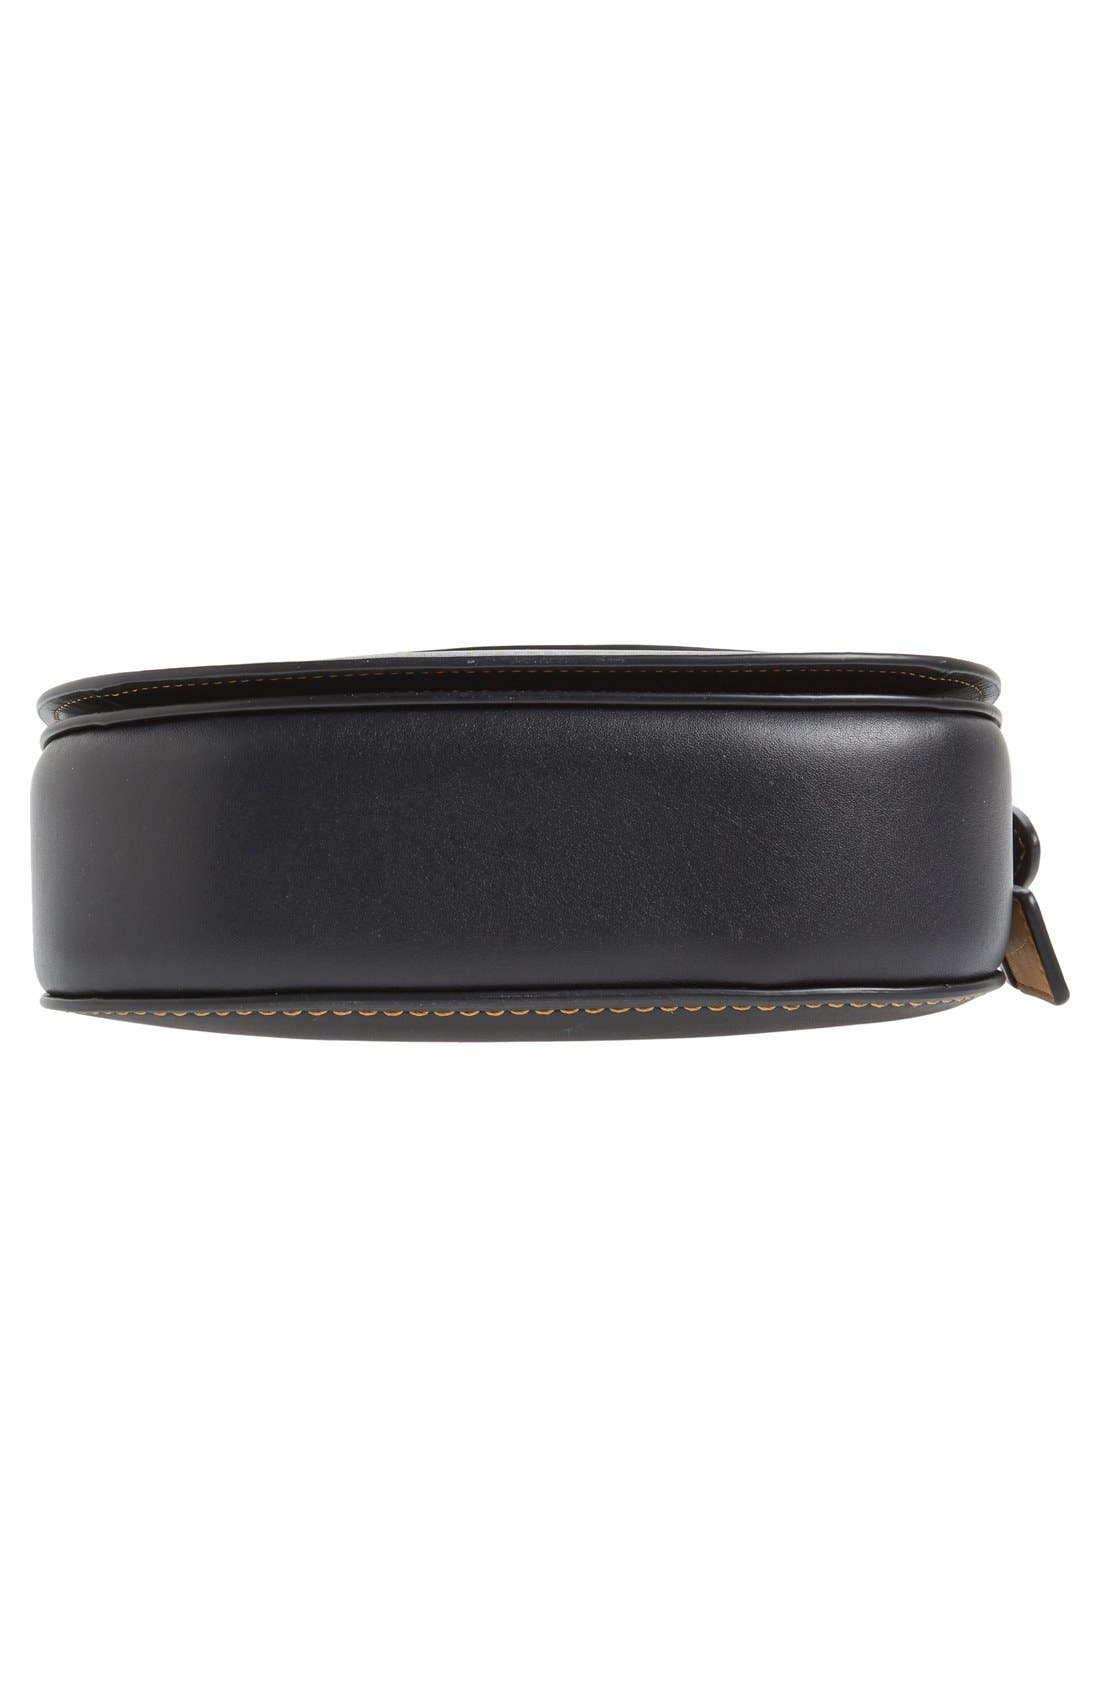 '23' Leather Saddle Bag,                             Alternate thumbnail 6, color,                             001